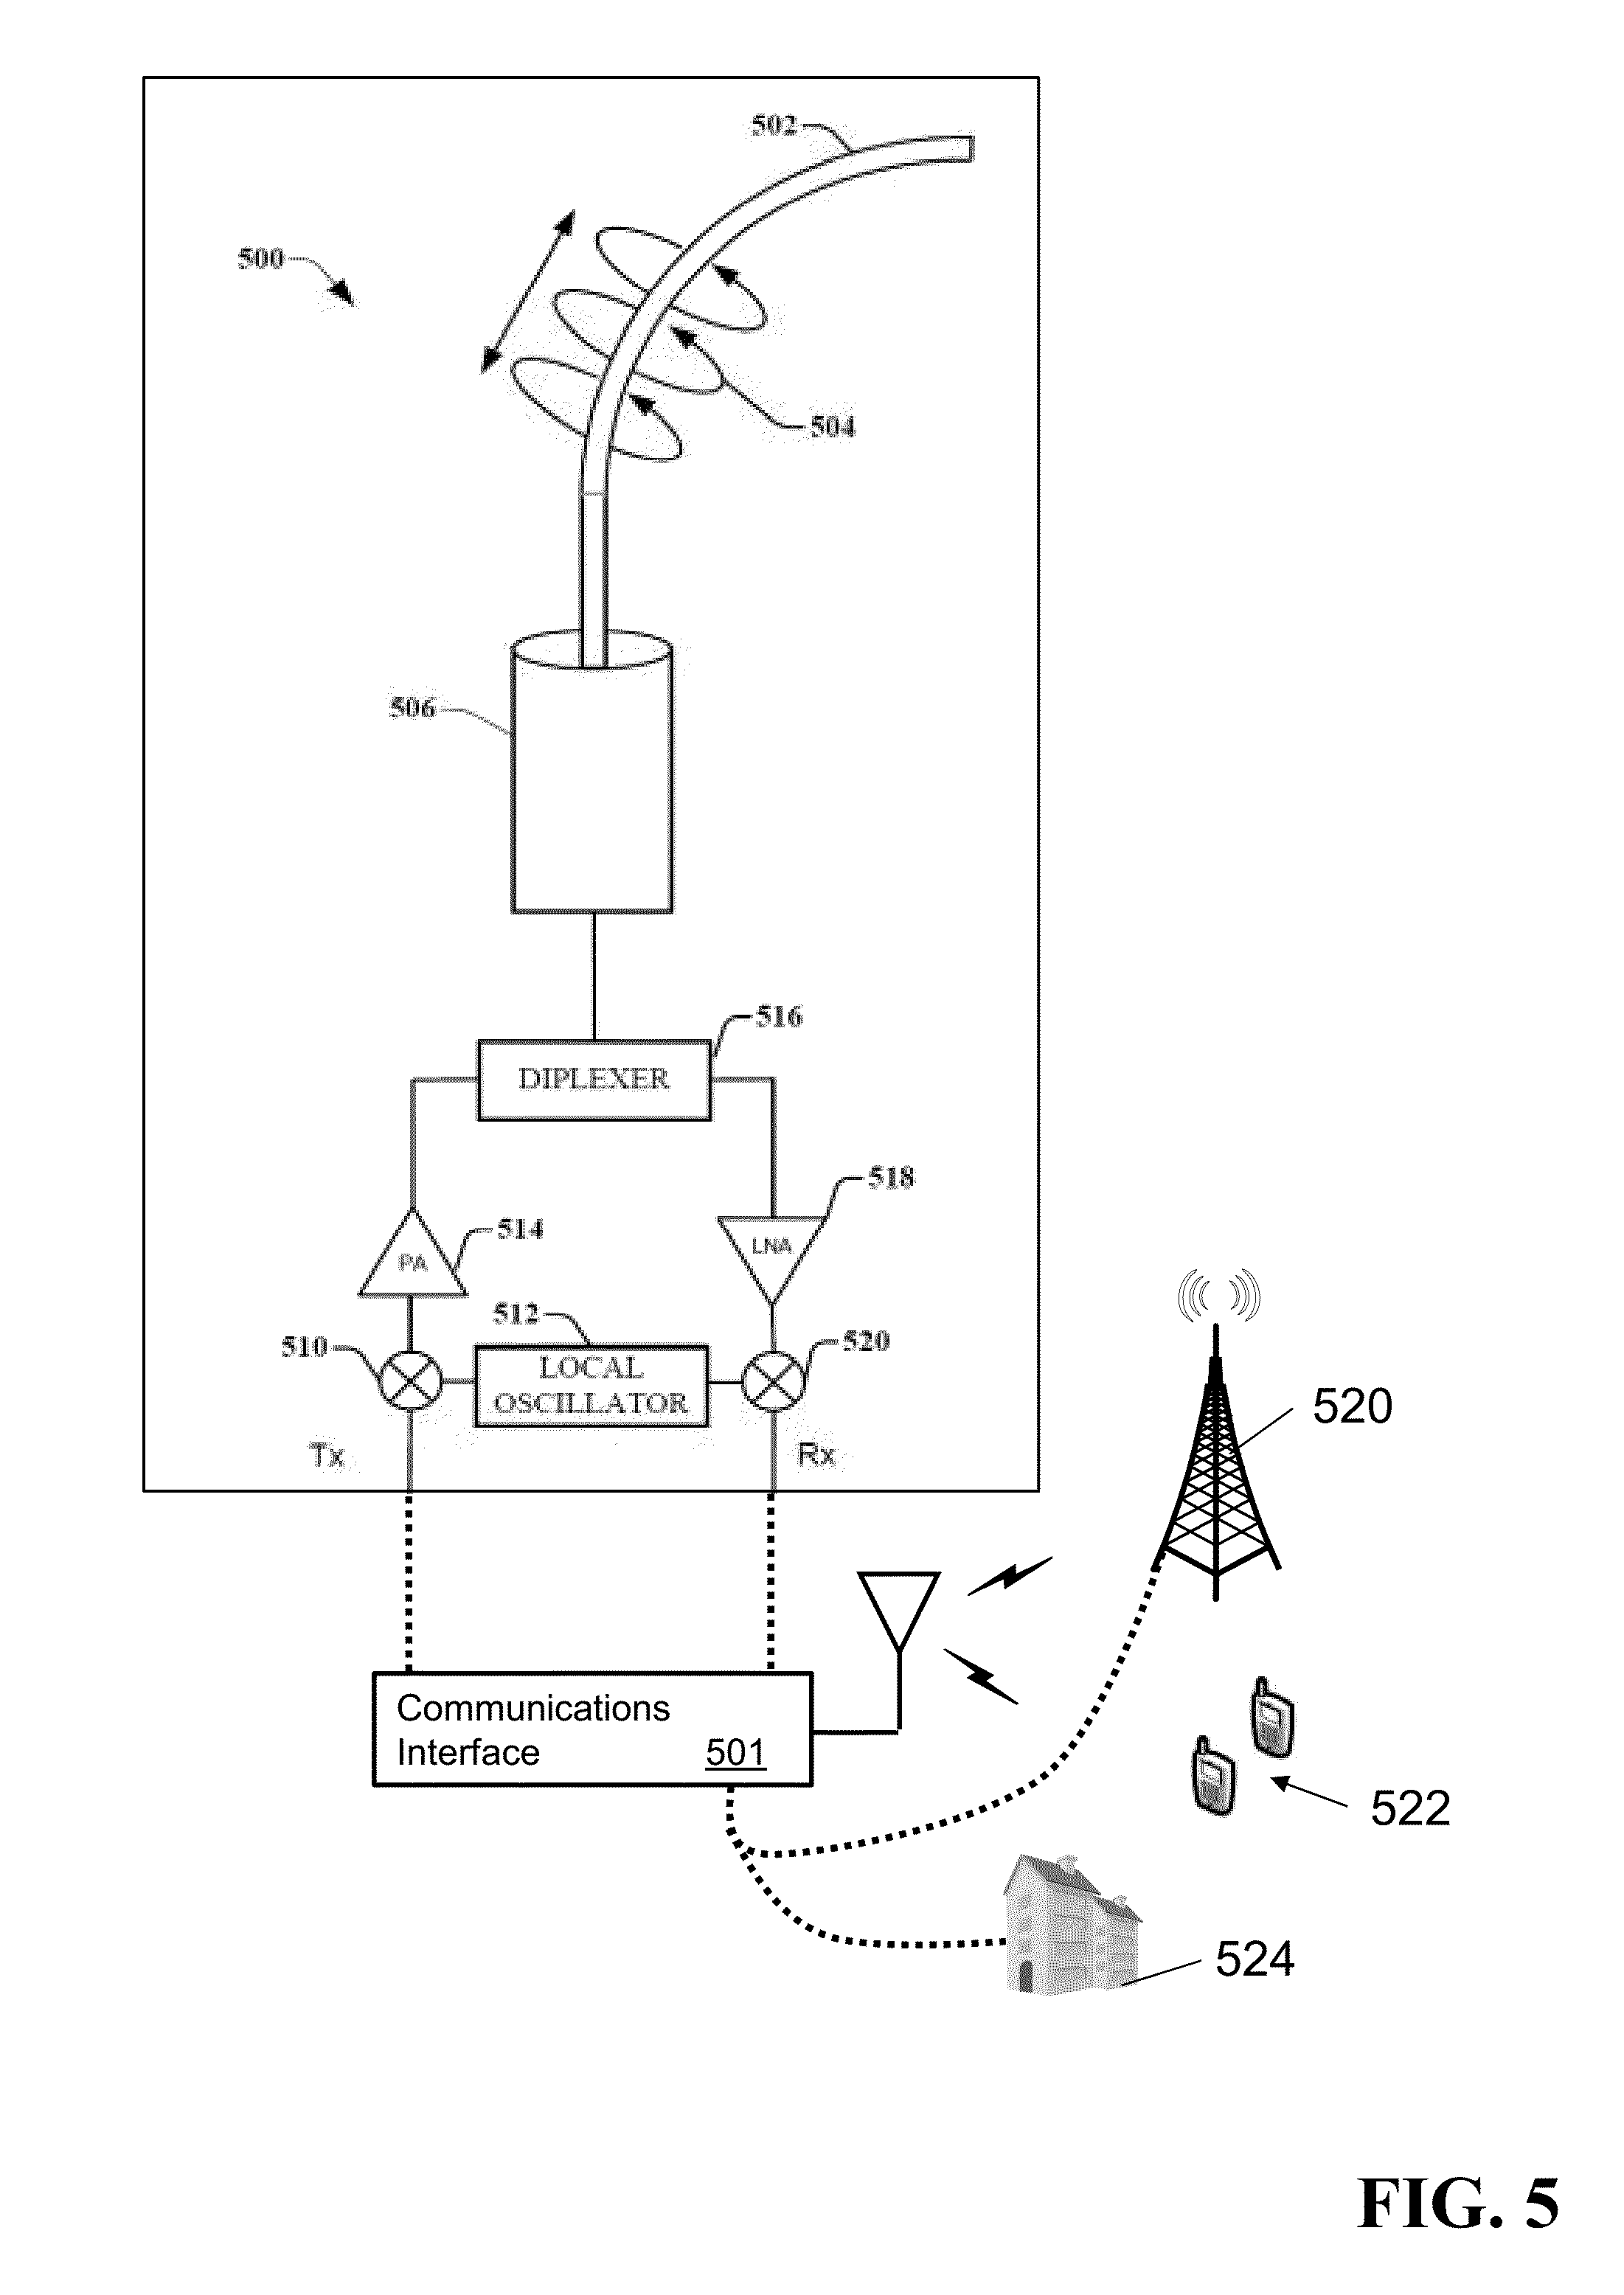 Us9312919b1 transmission device with impairment pensation and methods for use therewith patents